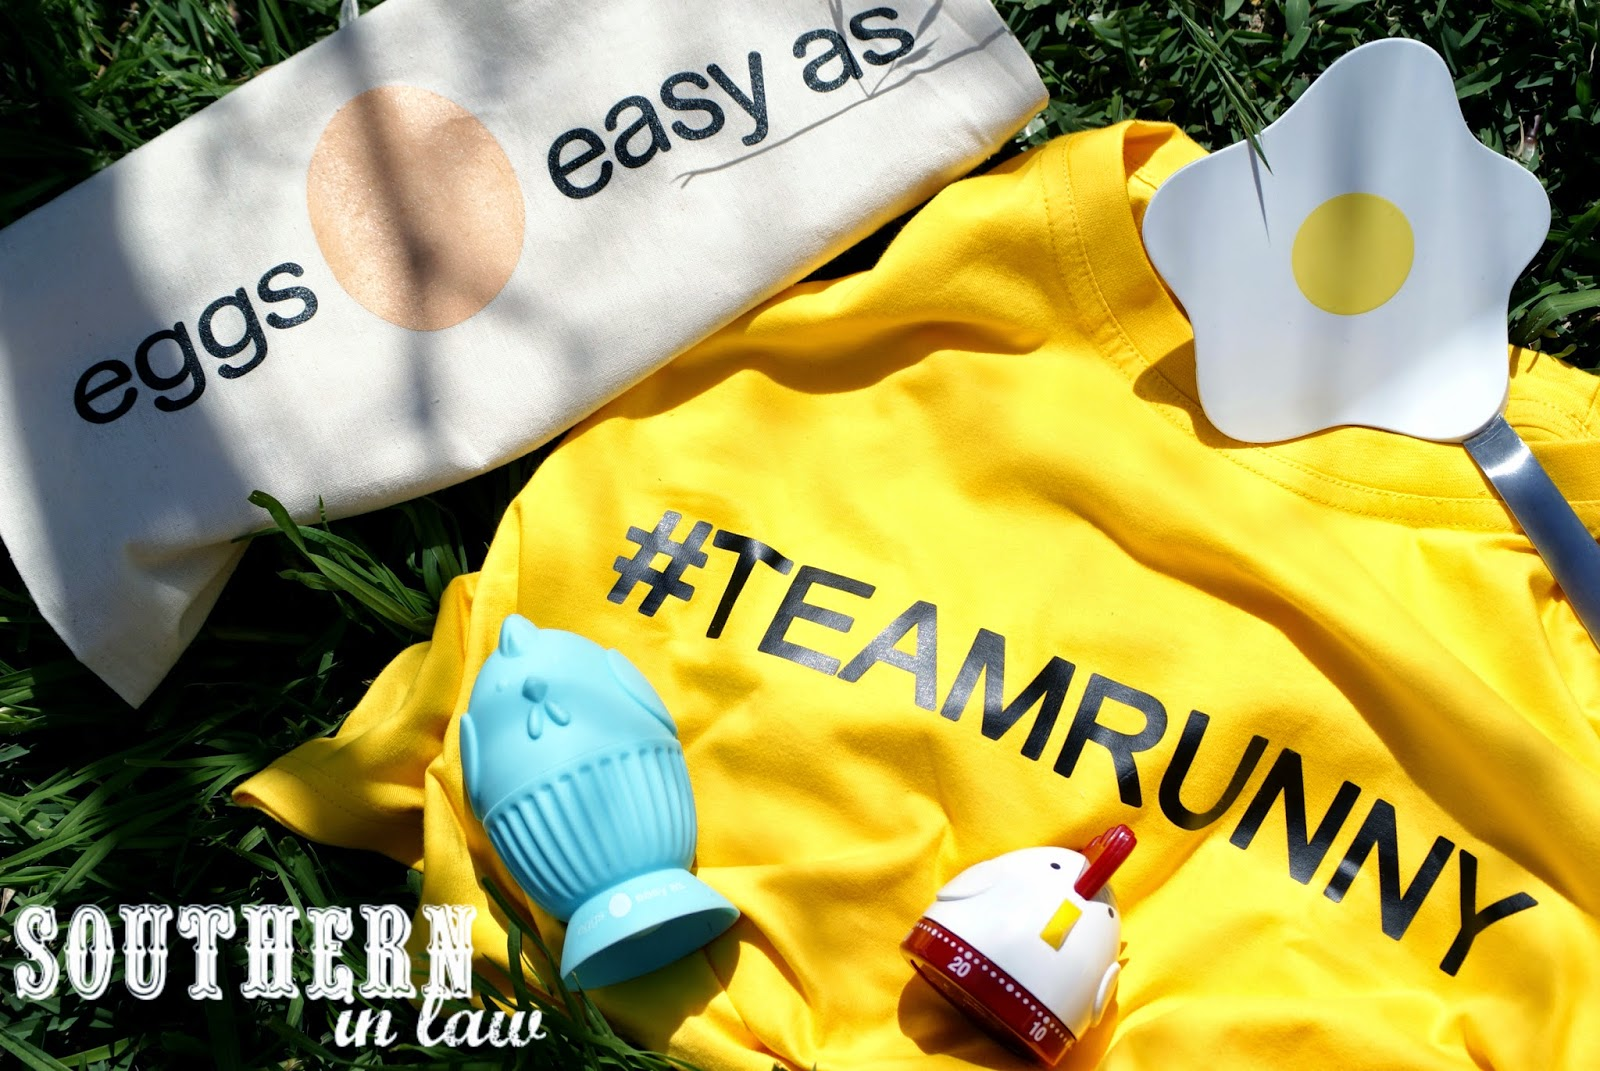 #TeamRunny Eggs Easy As Gift Pack